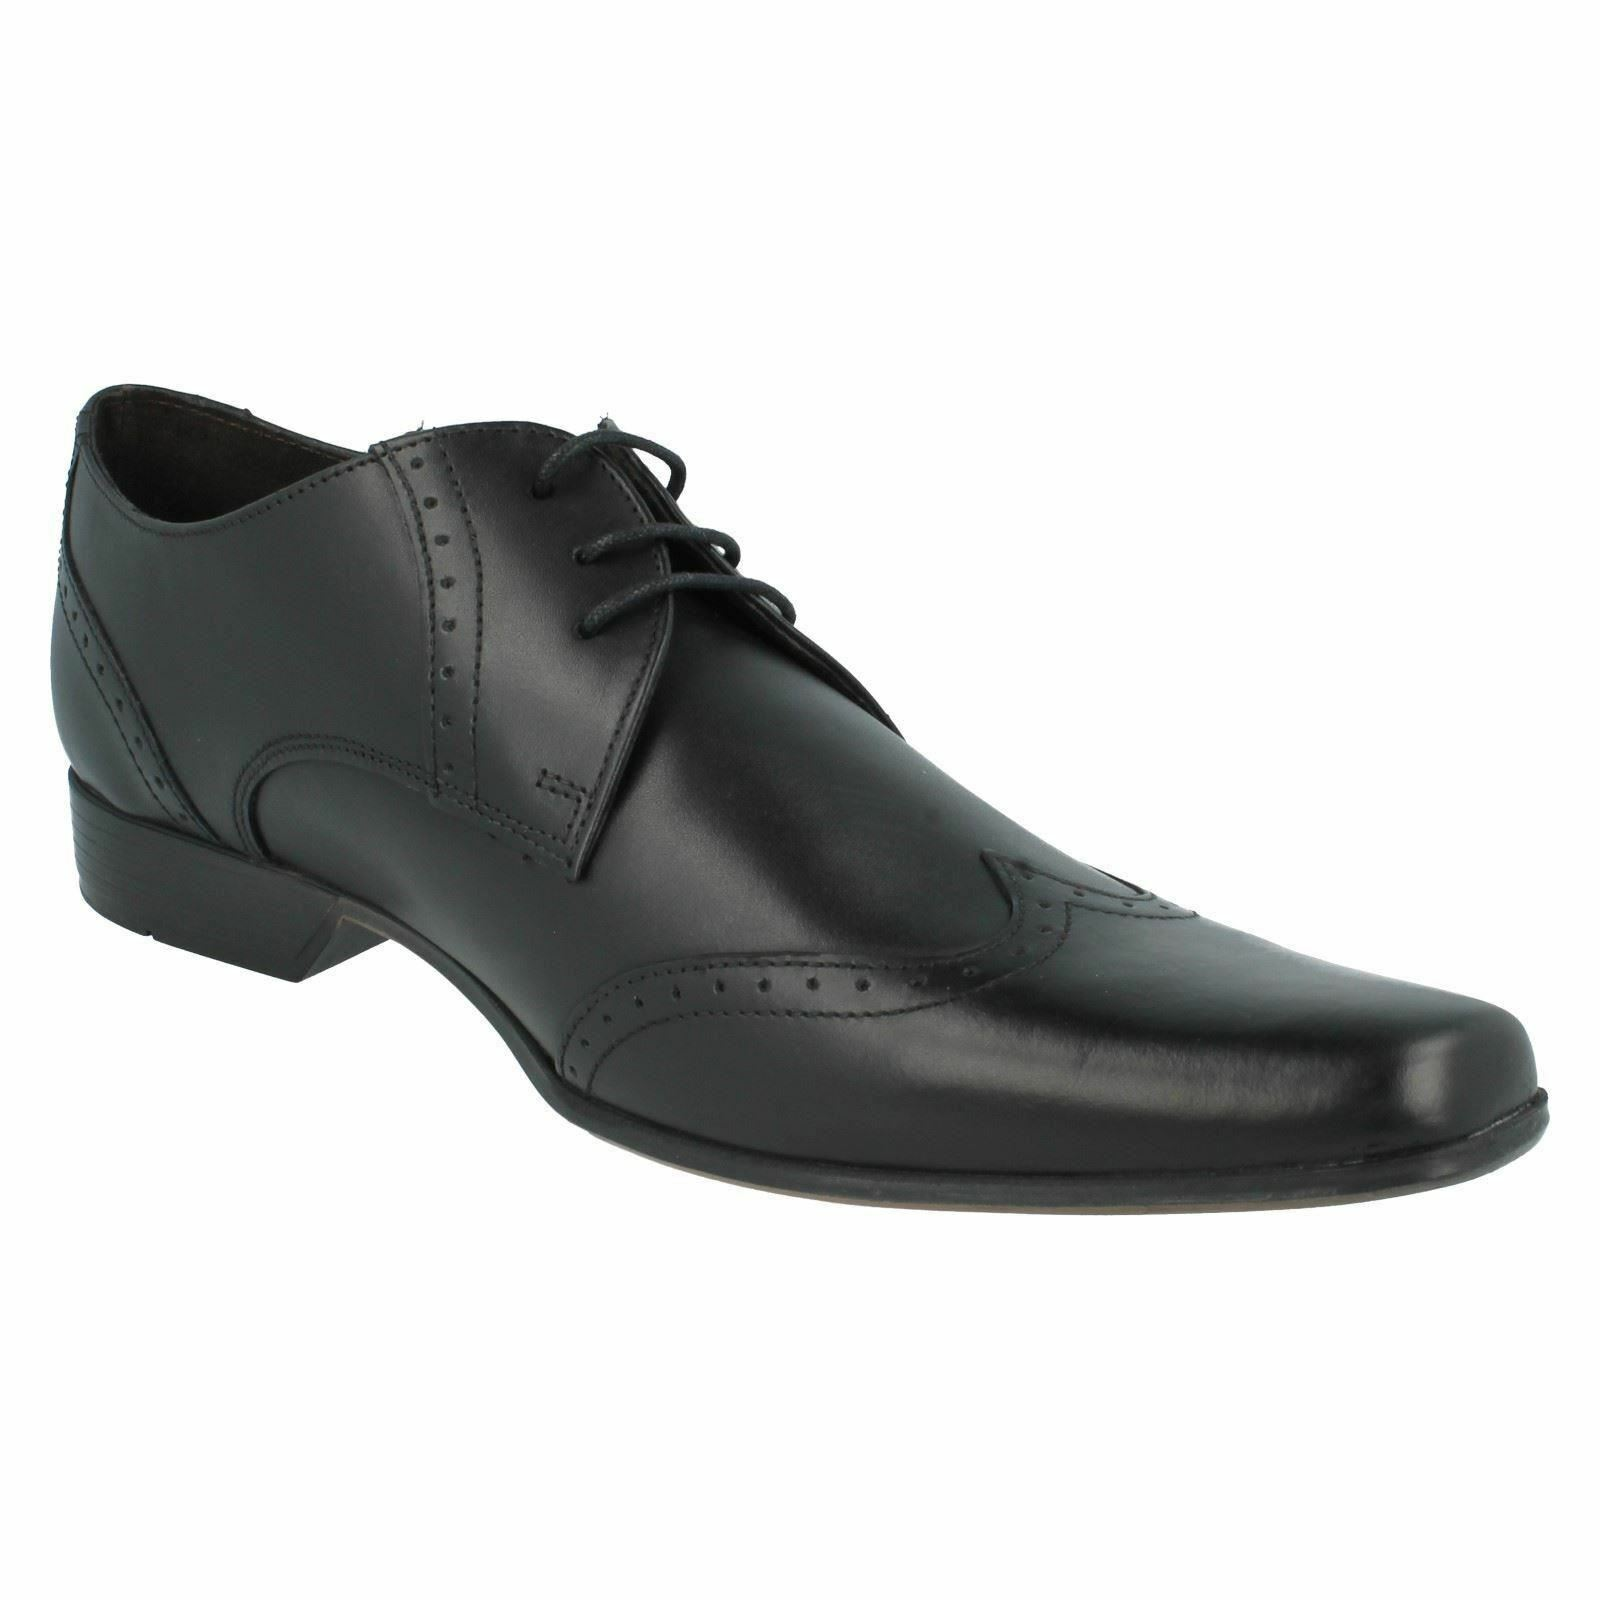 hommes BASE LONDON Chaussures habillées - Bugsy Bugsy - MTO d73b08